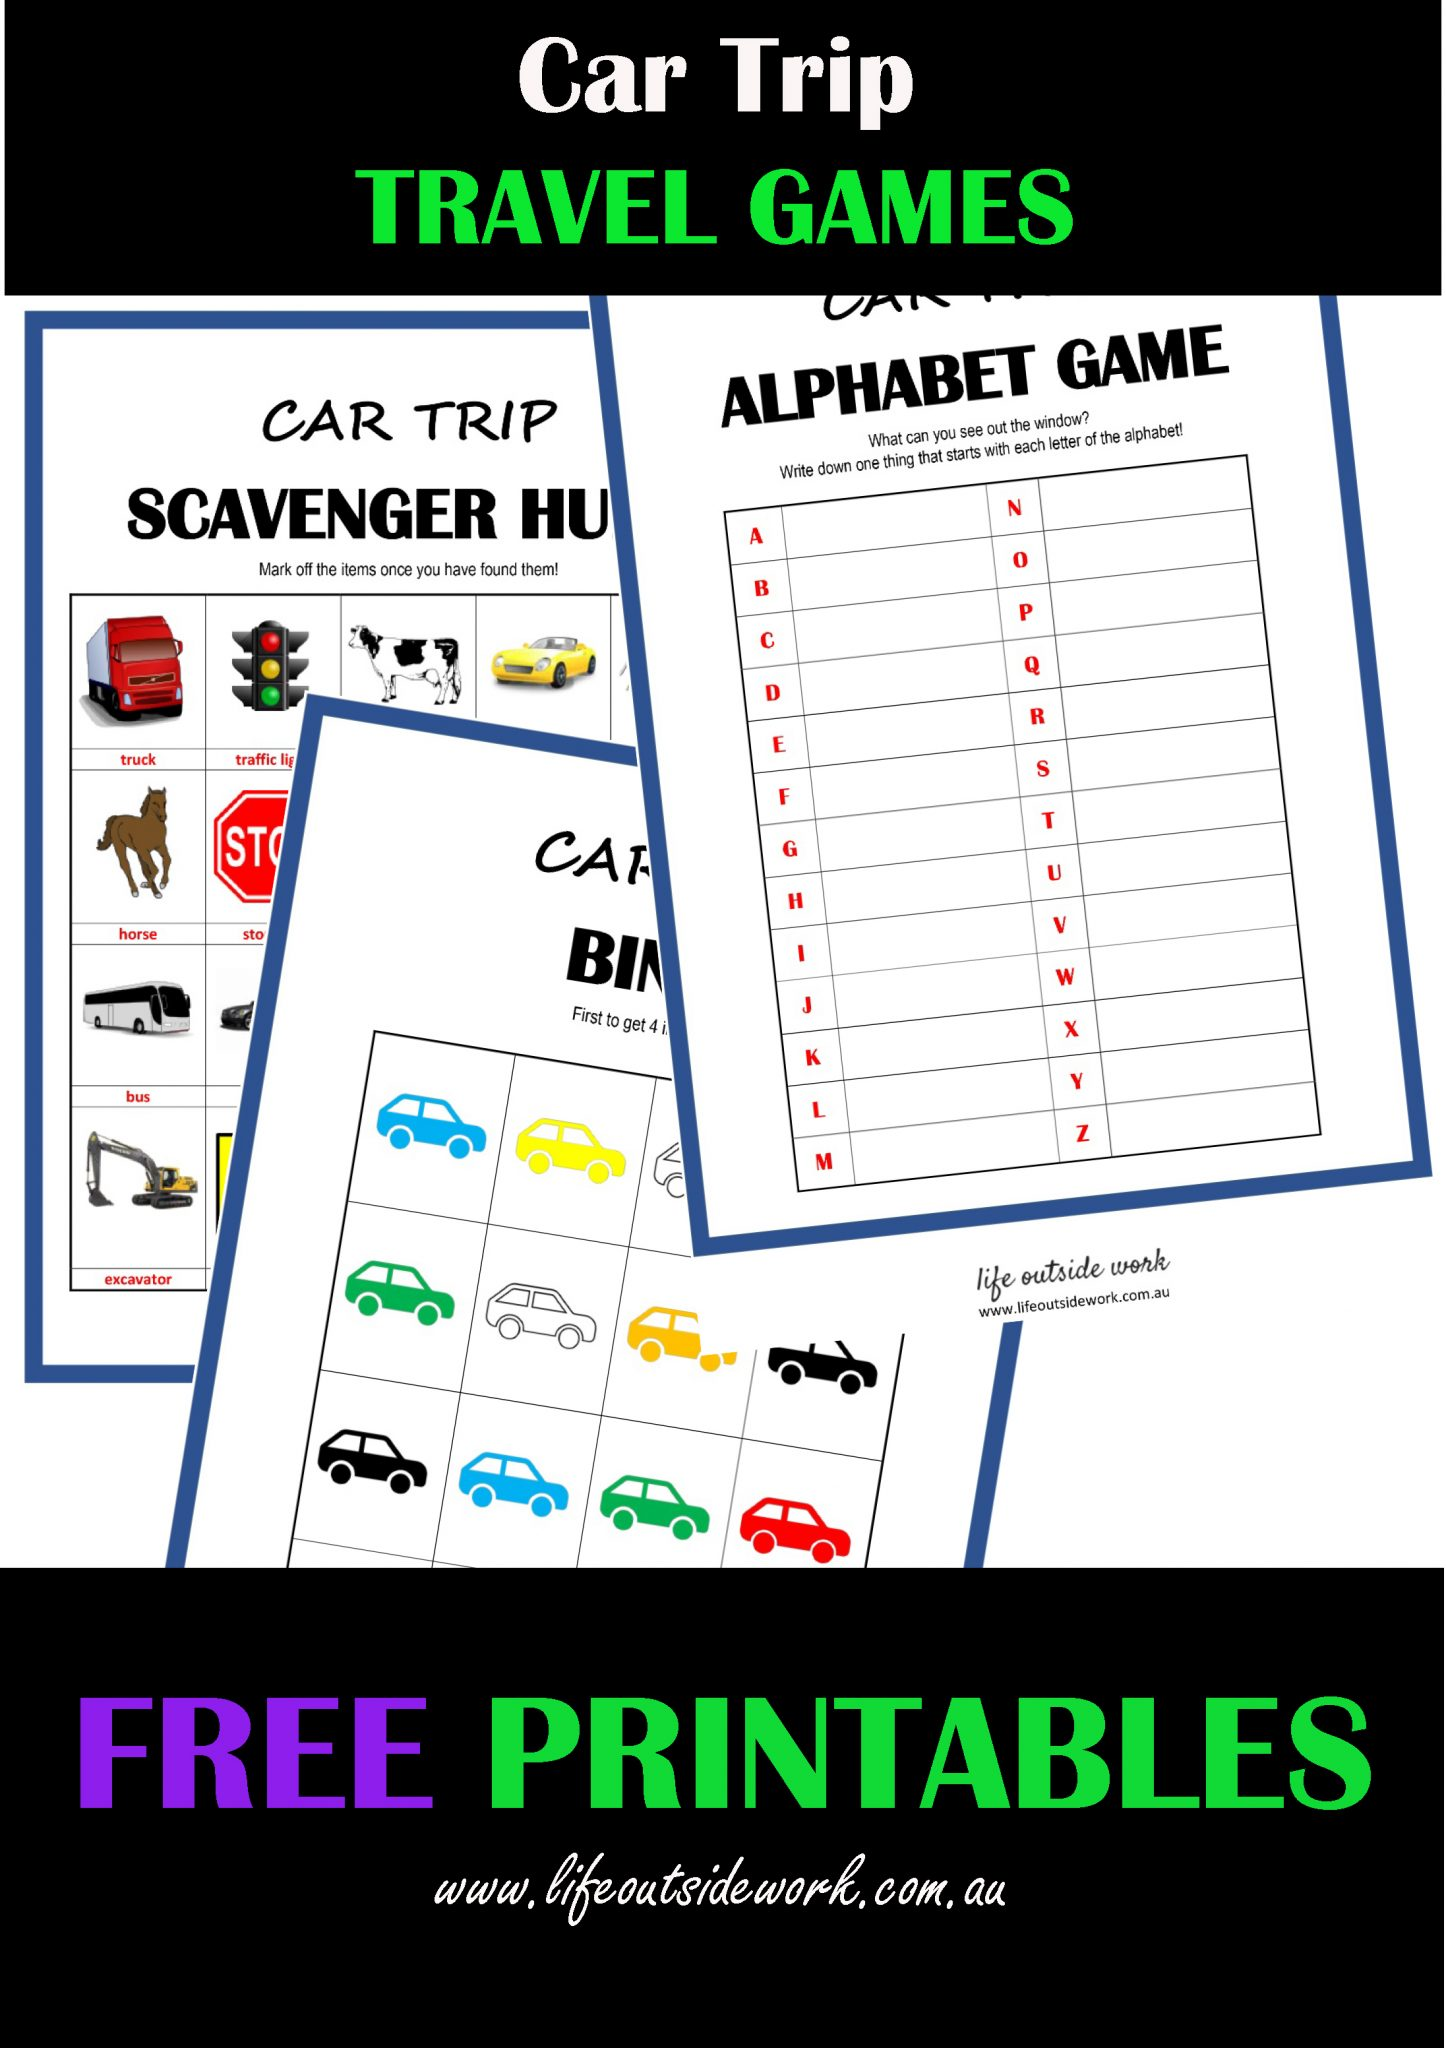 This is a photo of Smart Travel Games Printables